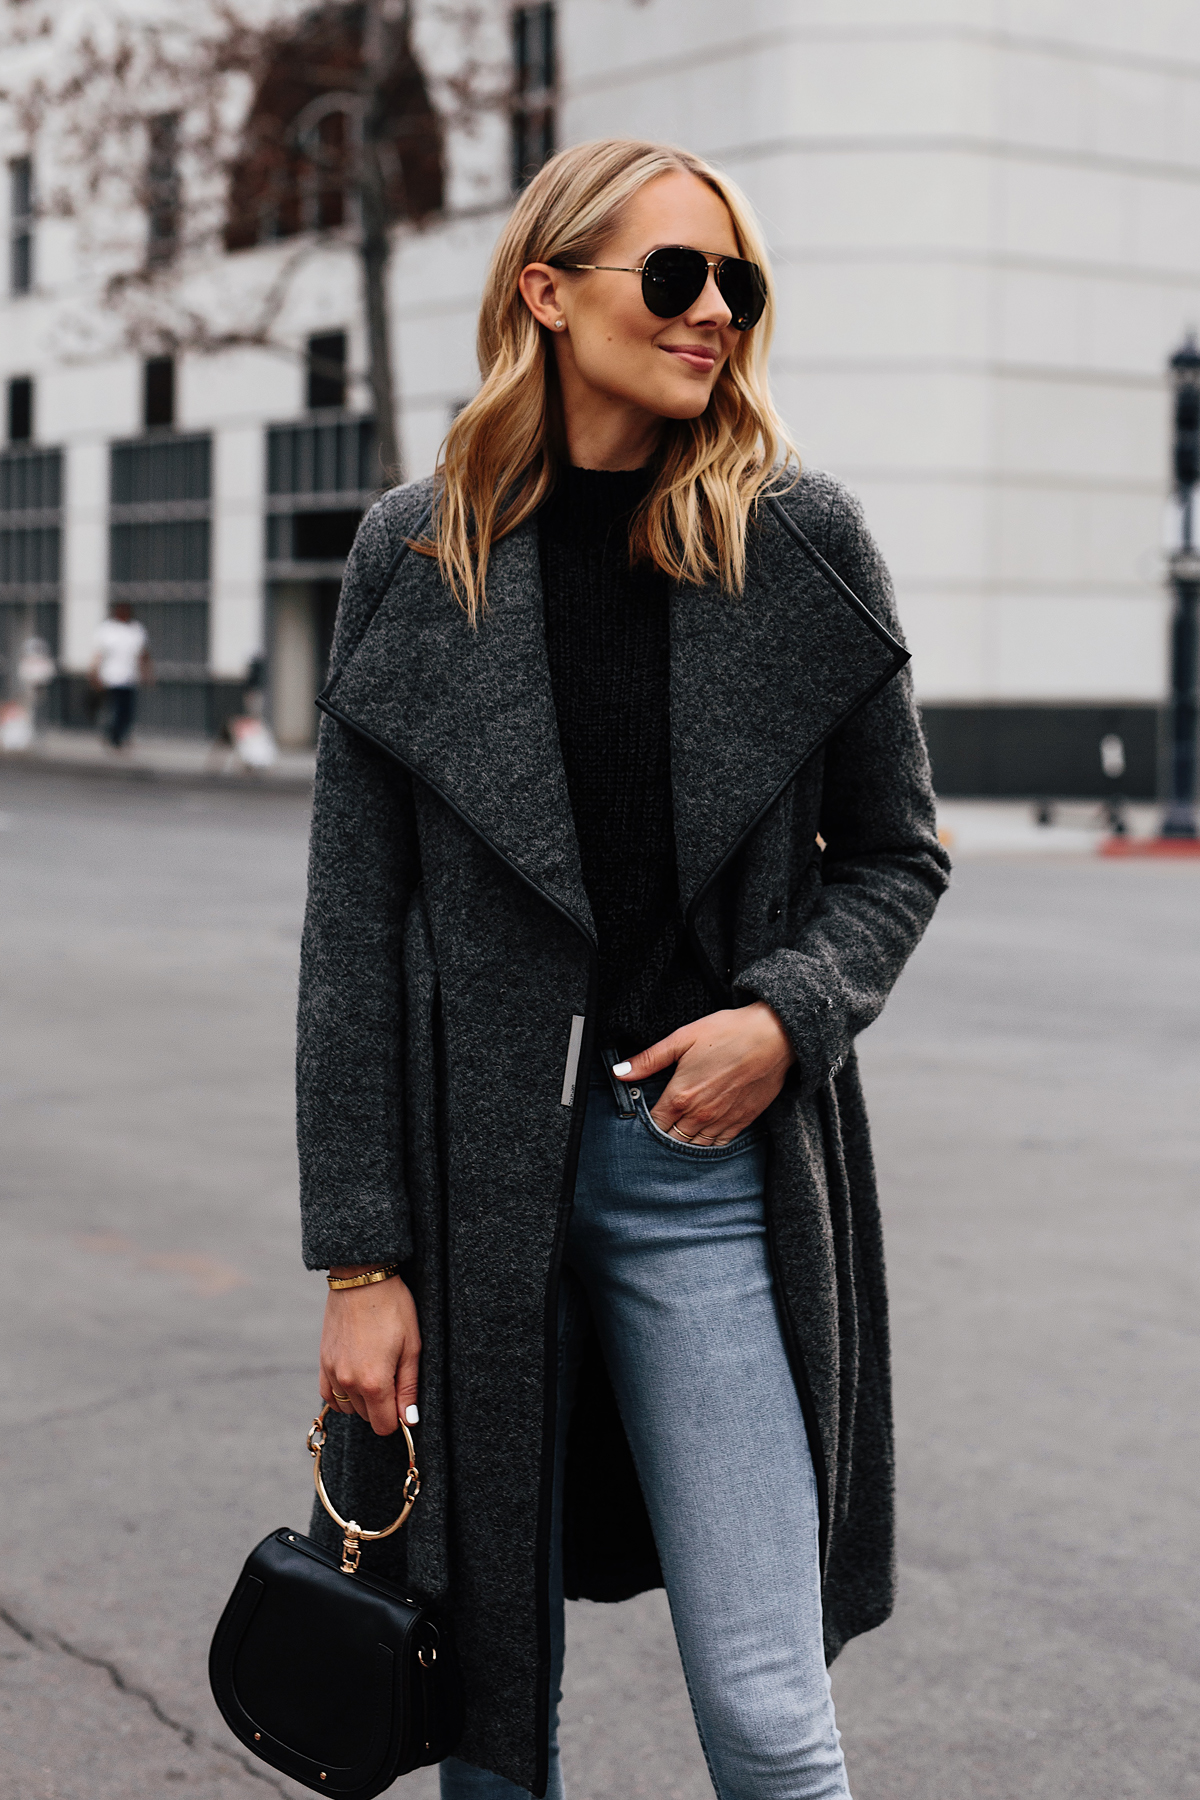 Blonde Woman Wearing Grey Wool Wrap Coat Black Sweater Denim Skinny Jeans Outfit Fashion Jackson San Diego Fashion Blogger Street Style